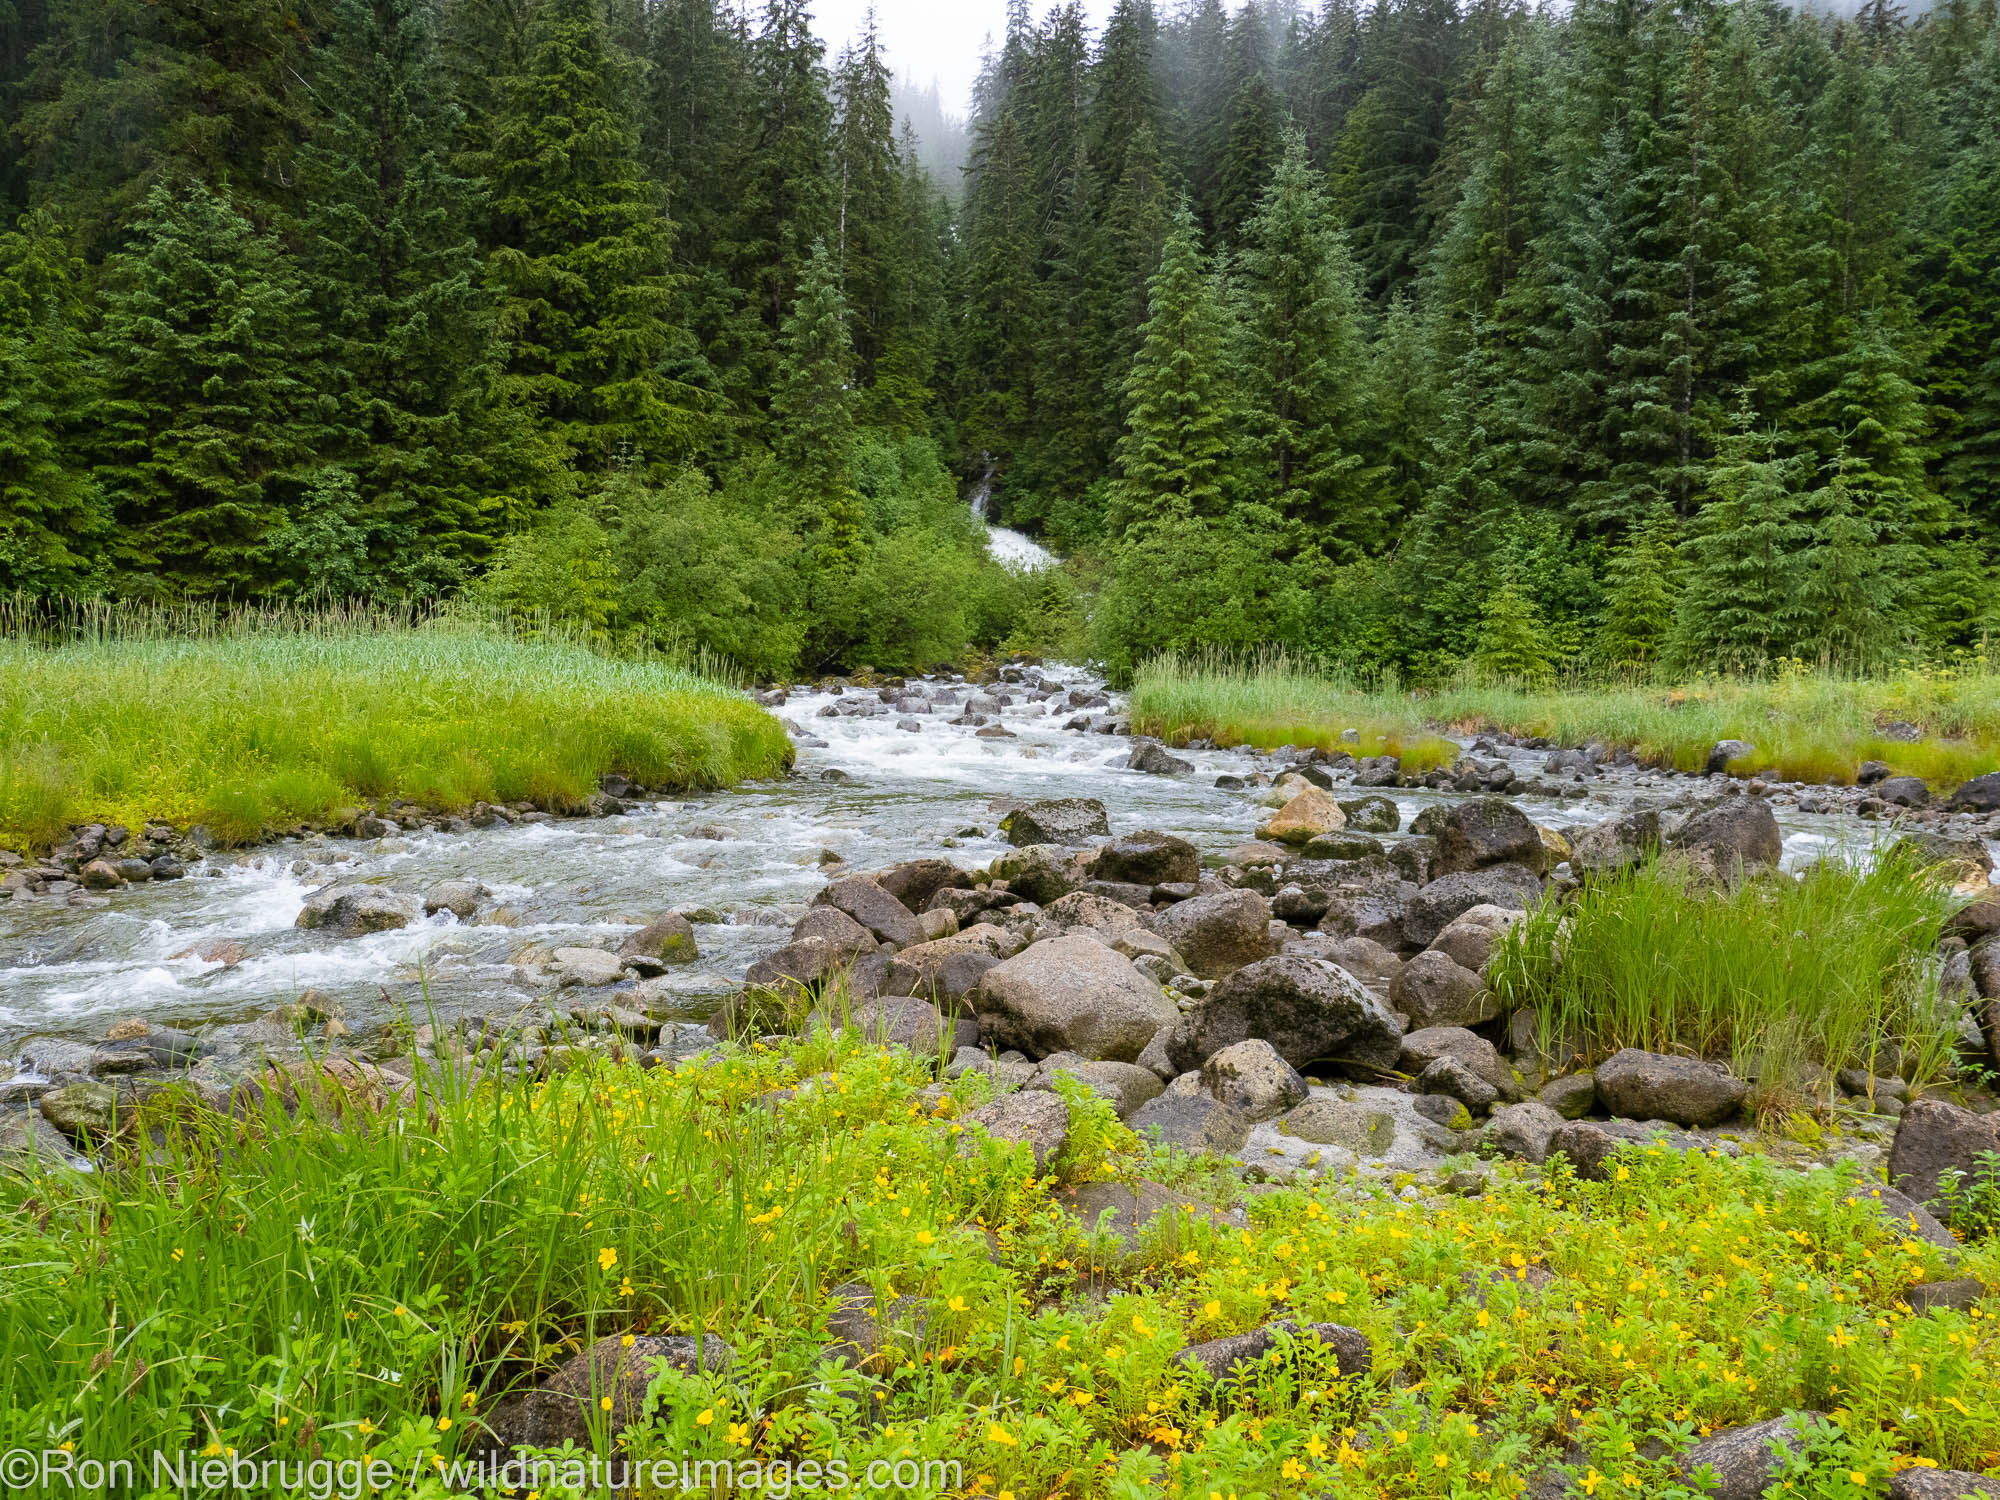 Ford's Terror, Tongass National Forest, Alaska.